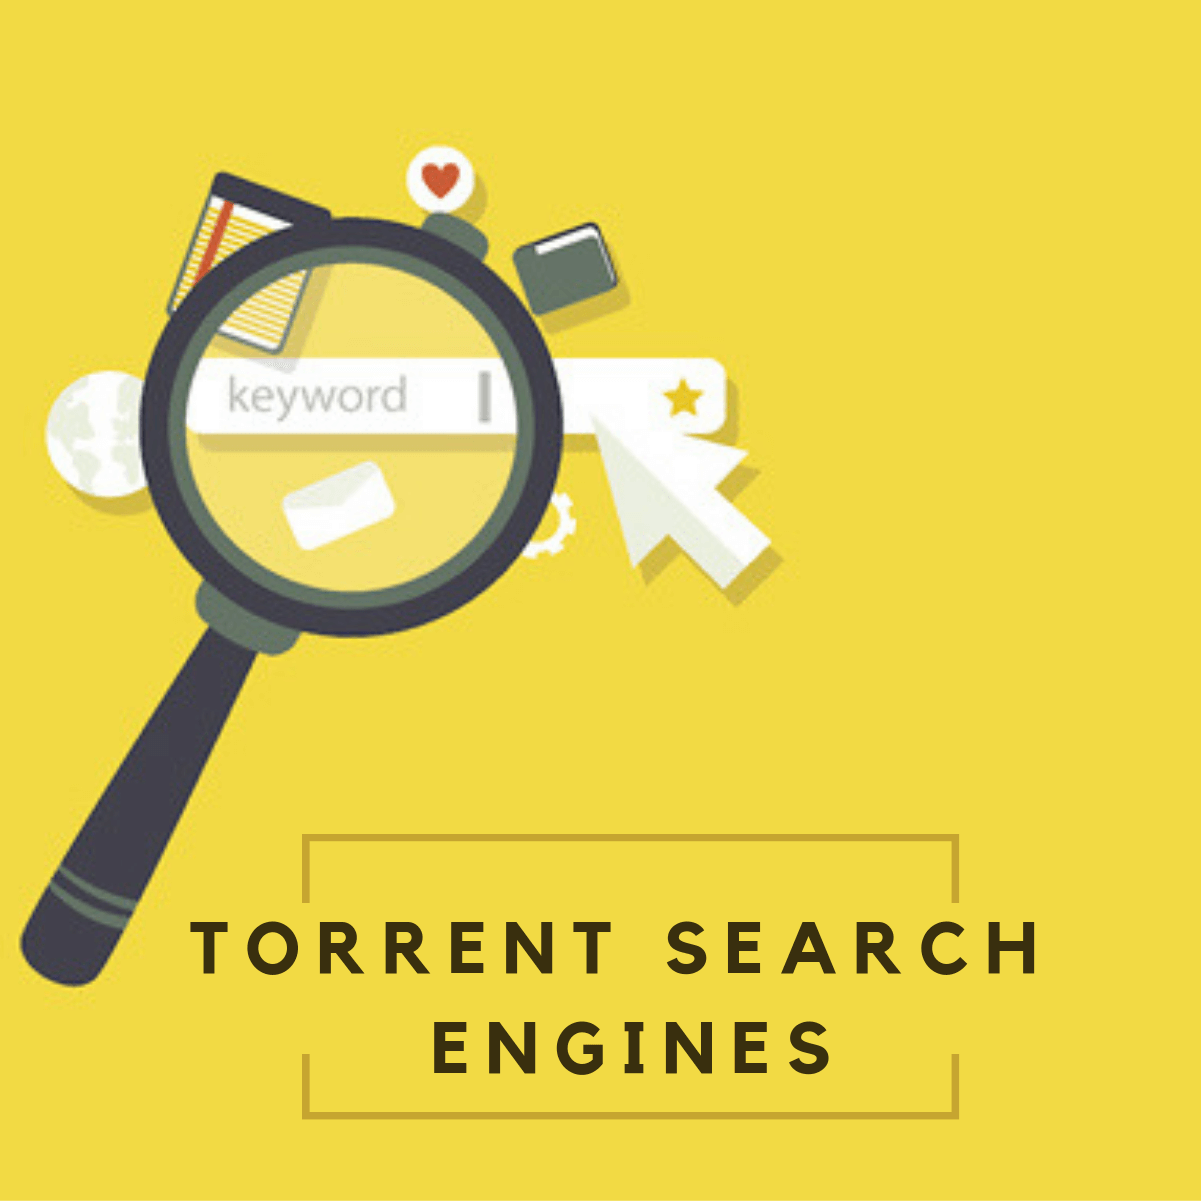 17 Best Torrent Search Engines of 2019 (100% Working)